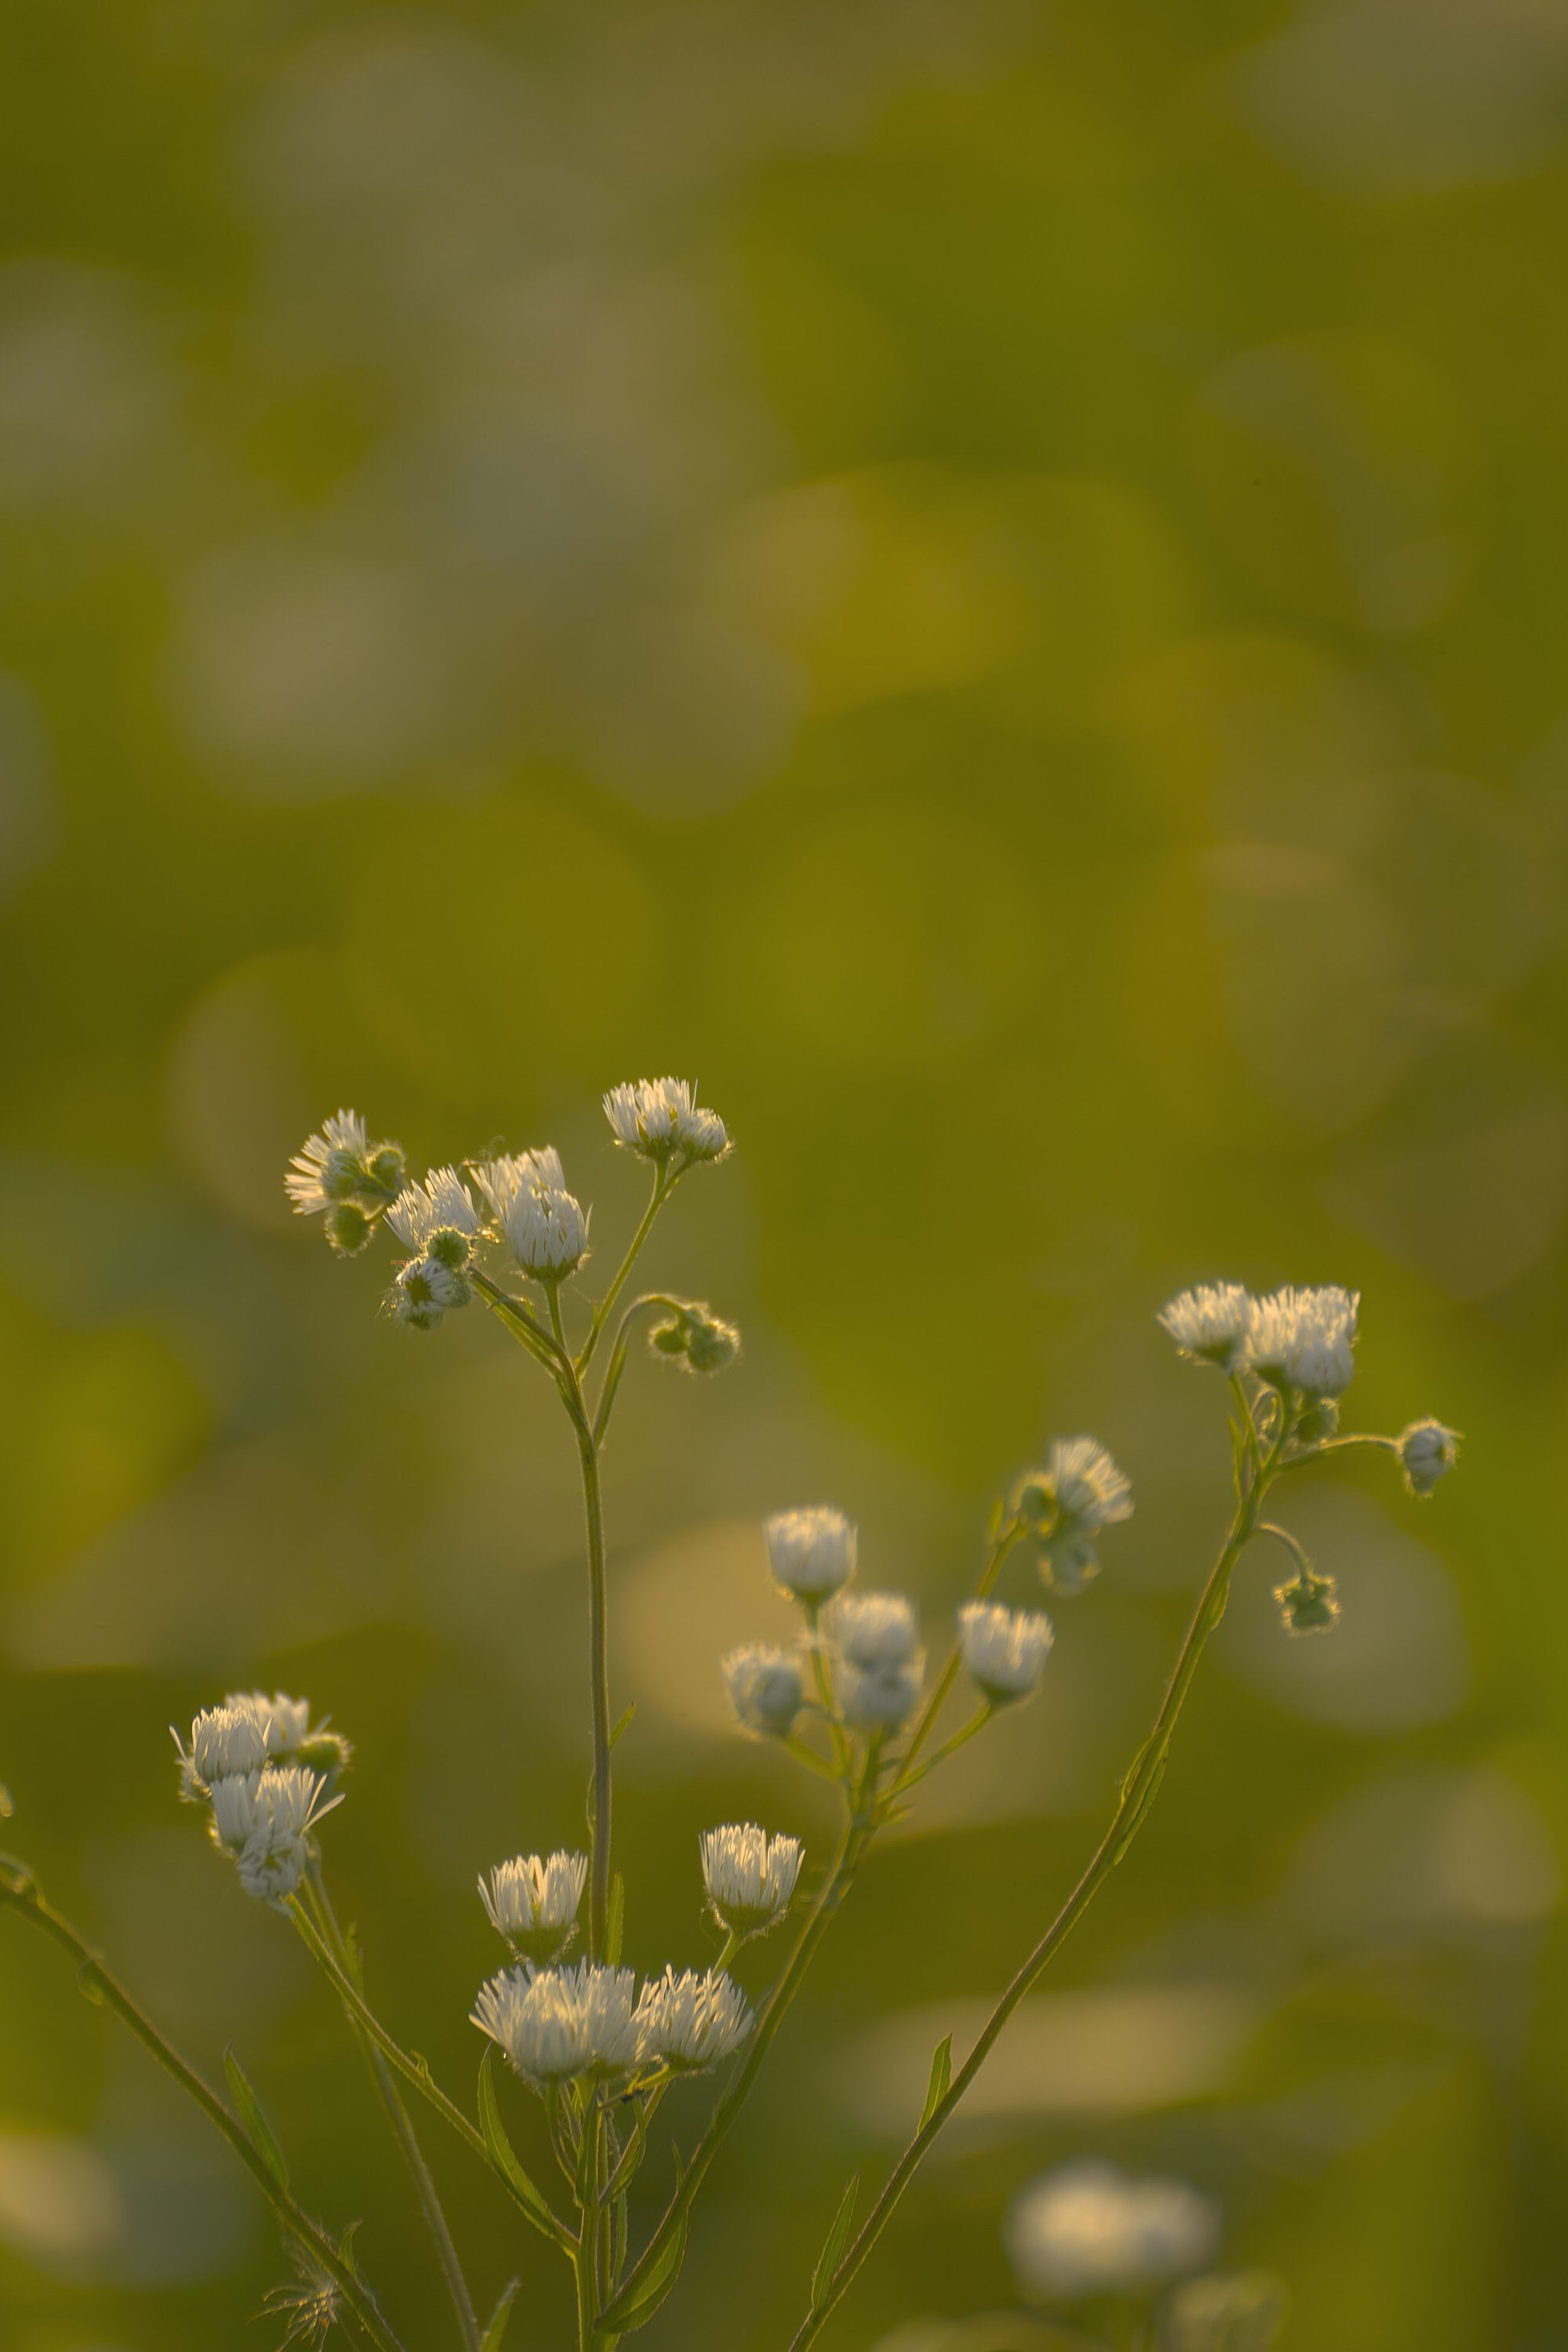 flower, growth, nature, plant, fragility, beauty in nature, no people, day, outdoors, blooming, close-up, flower head, freshness